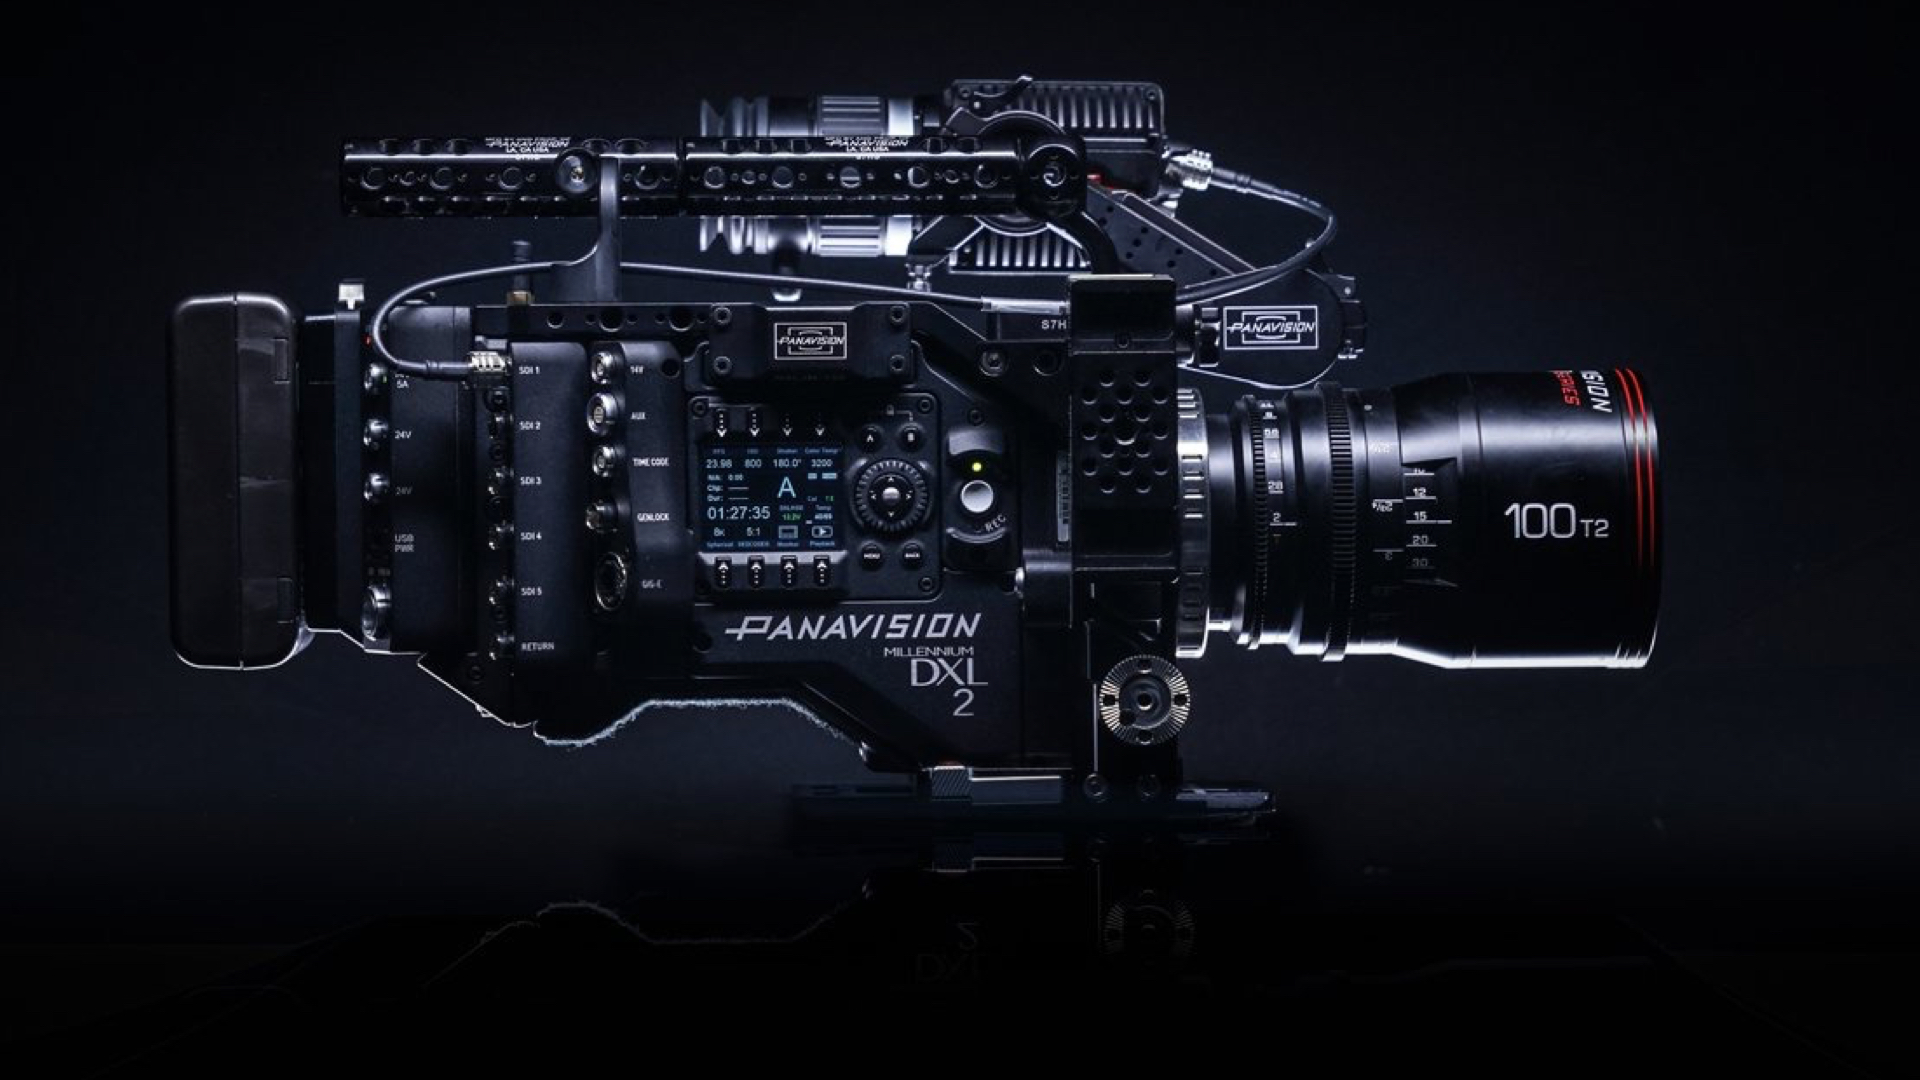 Panavision Announces New Millennium Dxl2 8k Camera With The Red